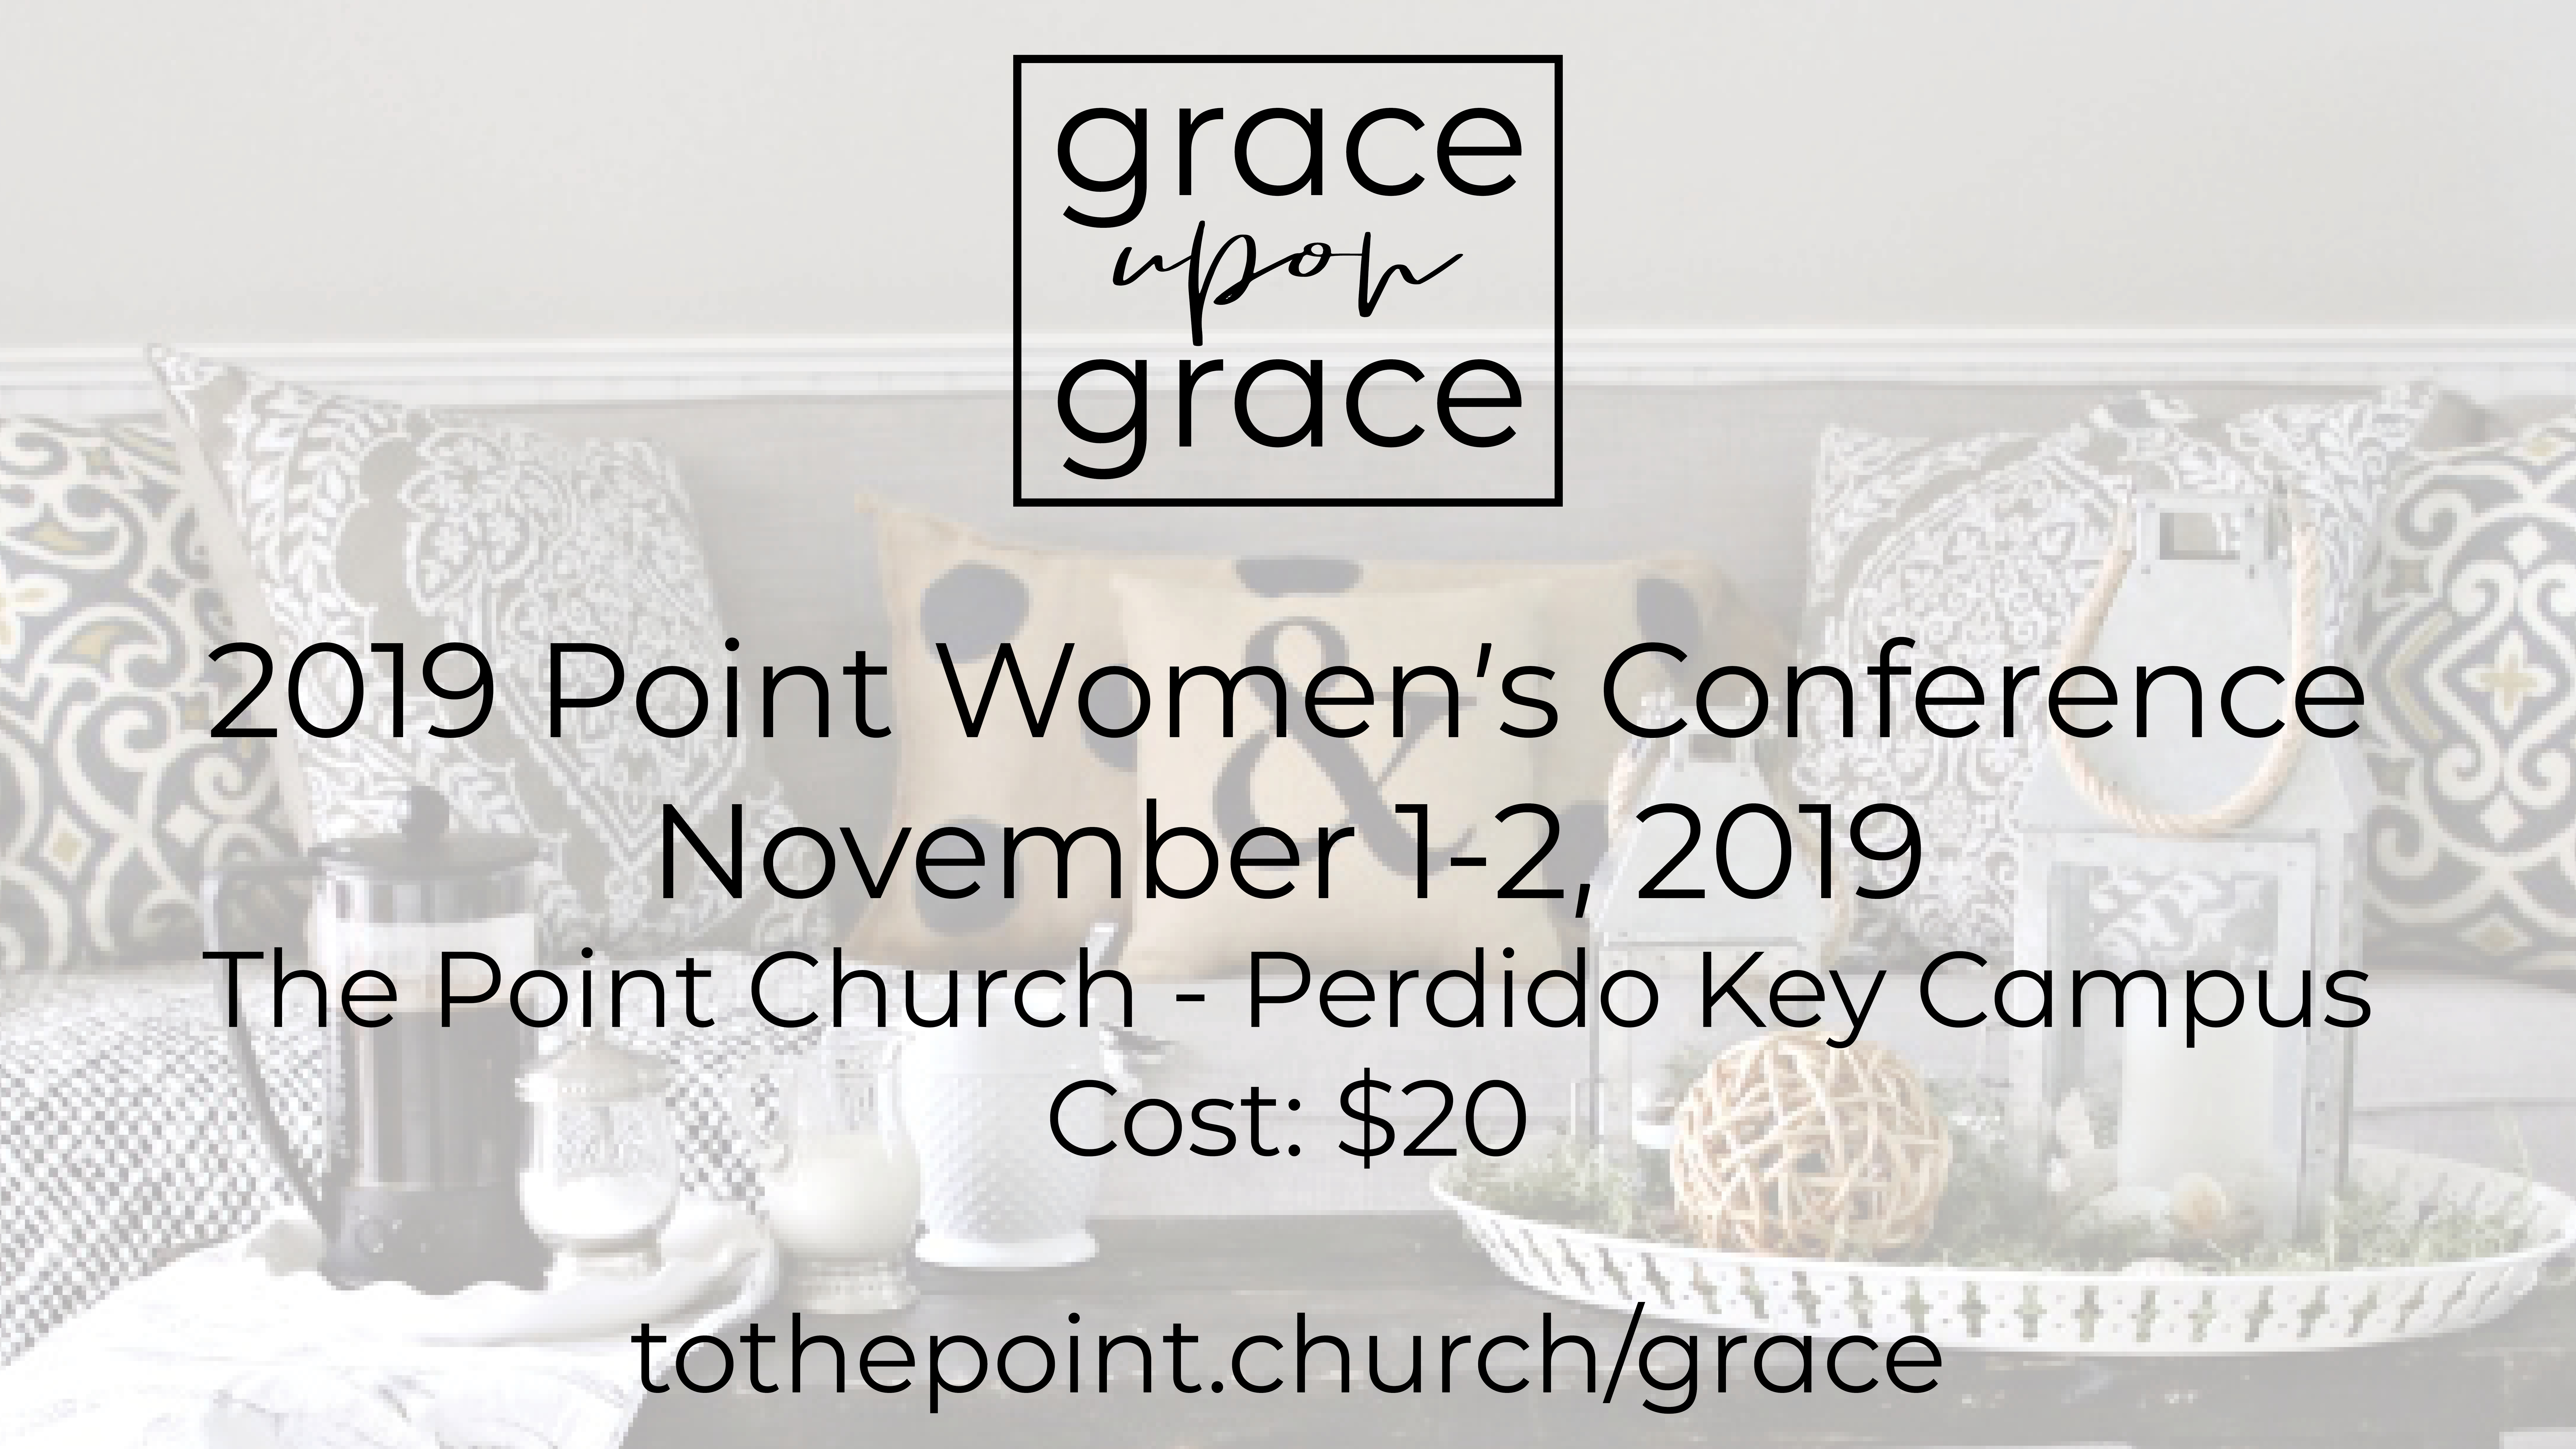 2019 Point Women's Conference